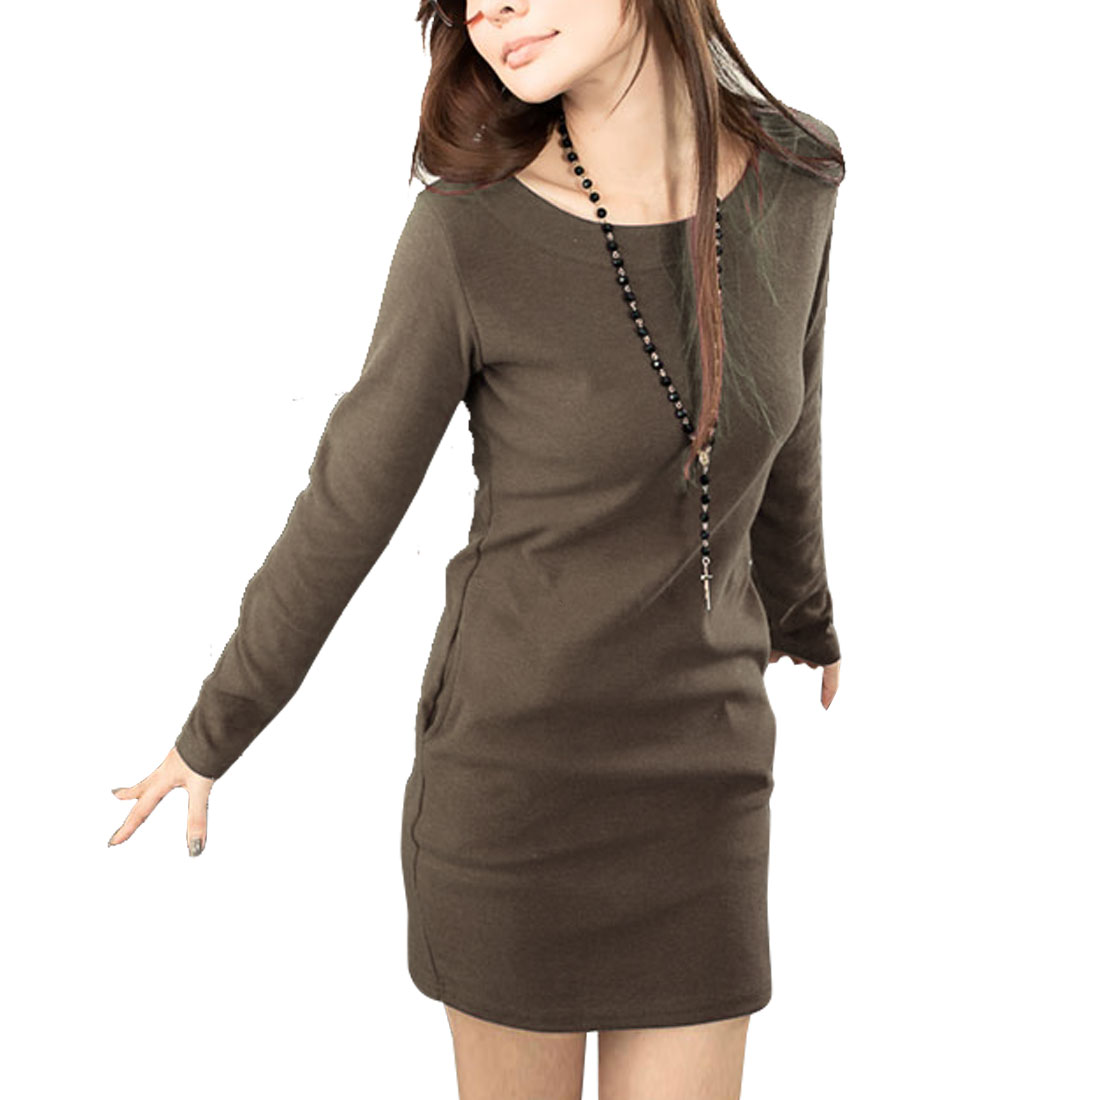 Ladies Long Sleeves Scoop Neck Base Layer Sheath Hip Dress Dark Brown Xs